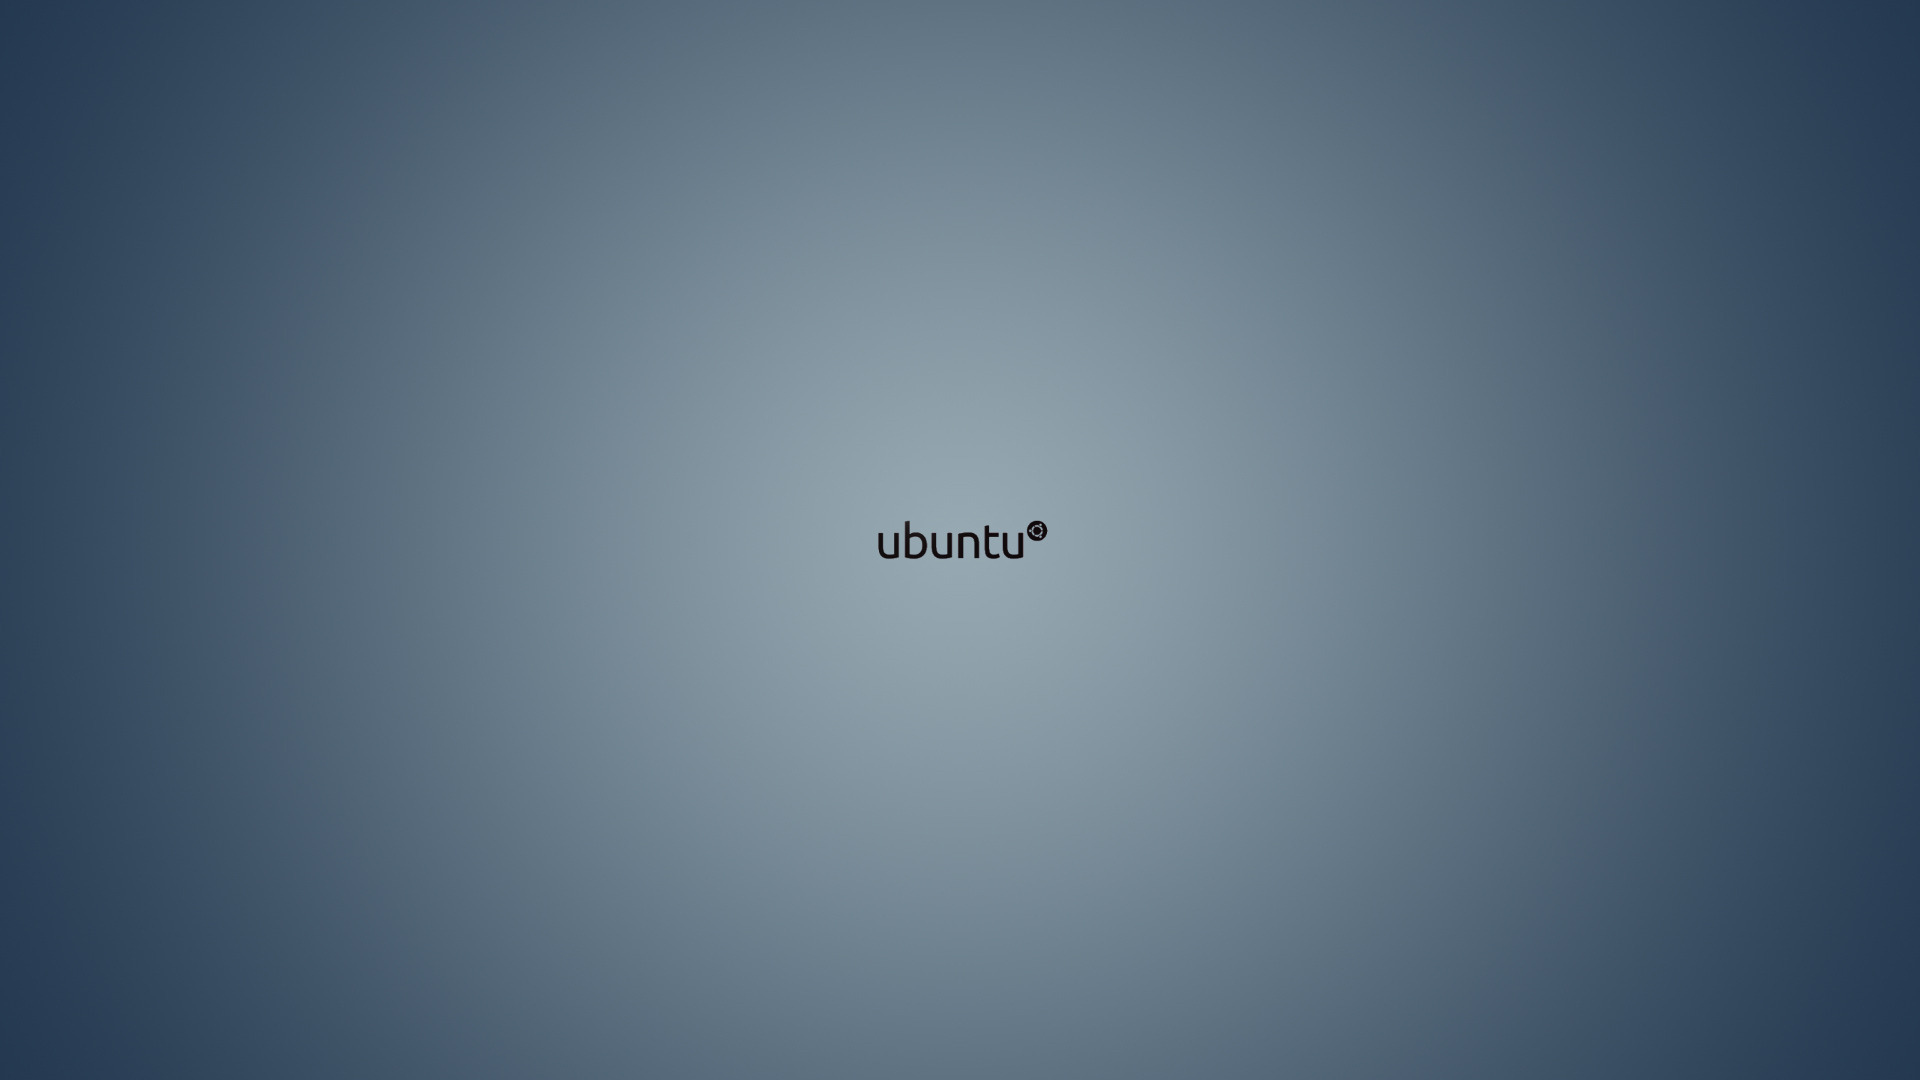 1920x1080 Technology Ubuntu  Ubuntu Wallpaper 1920x1080